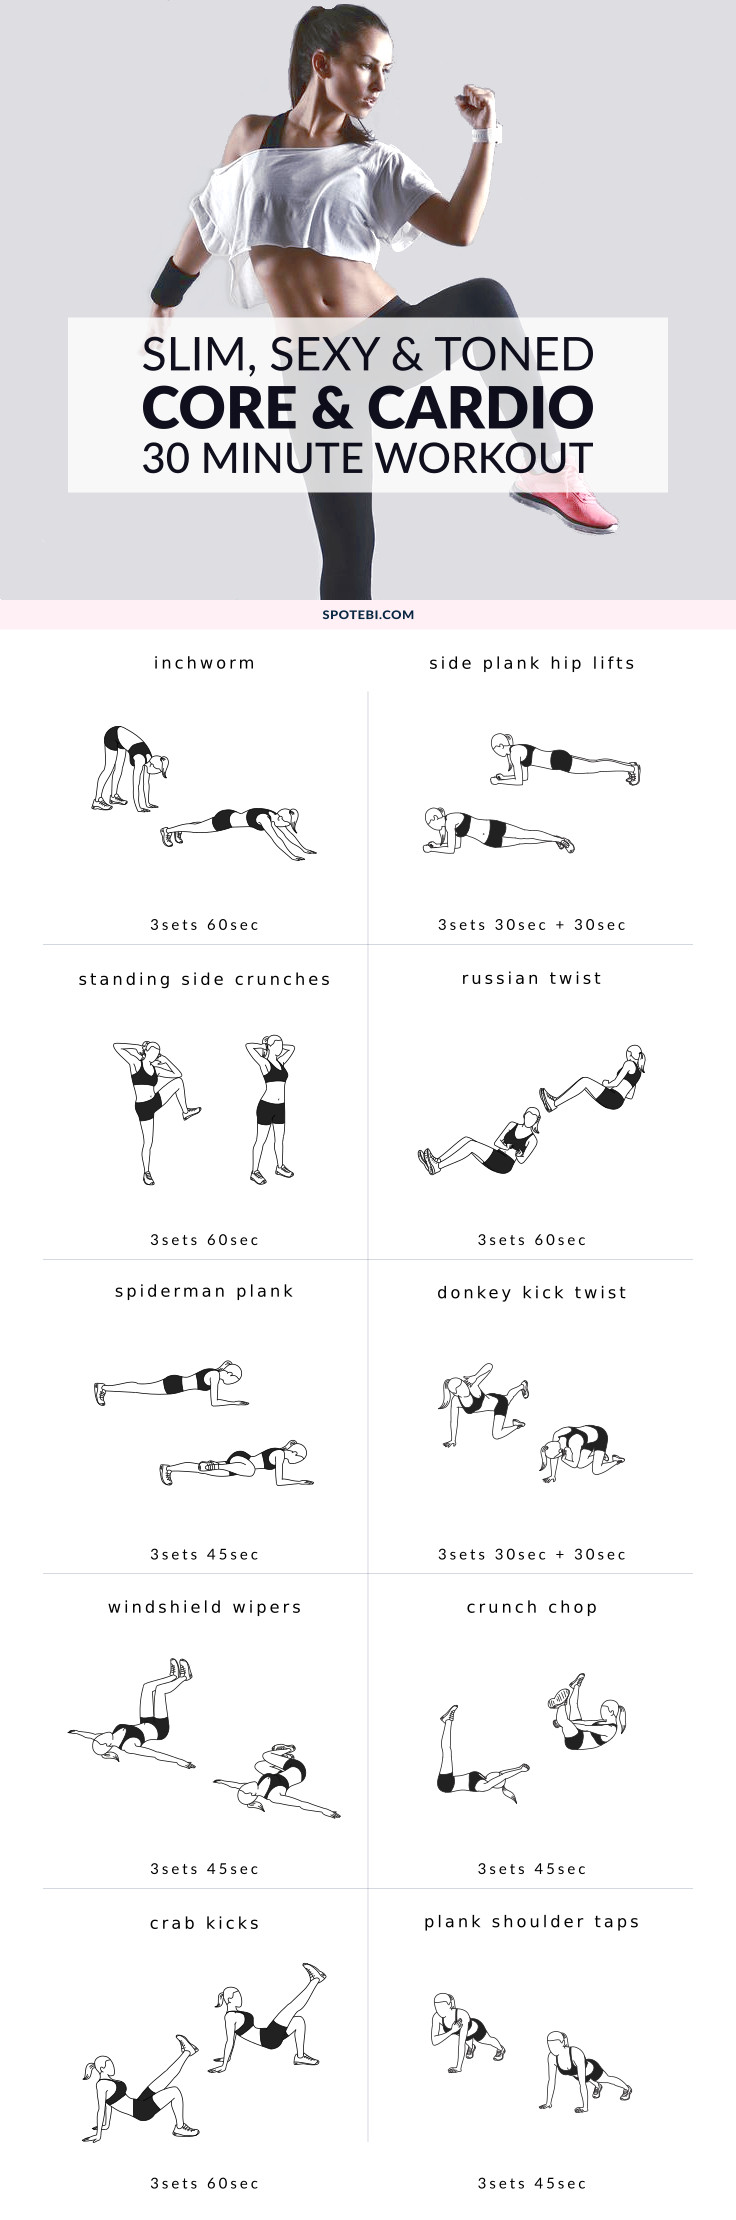 Work your abs, obliques and lower back with this core and cardio workout. Improve your aerobic fitness at home and get a toned, sculpted and slim belly! https://www.spotebi.com/workout-routines/bodyweight-at-home-core-and-cardio-workout/